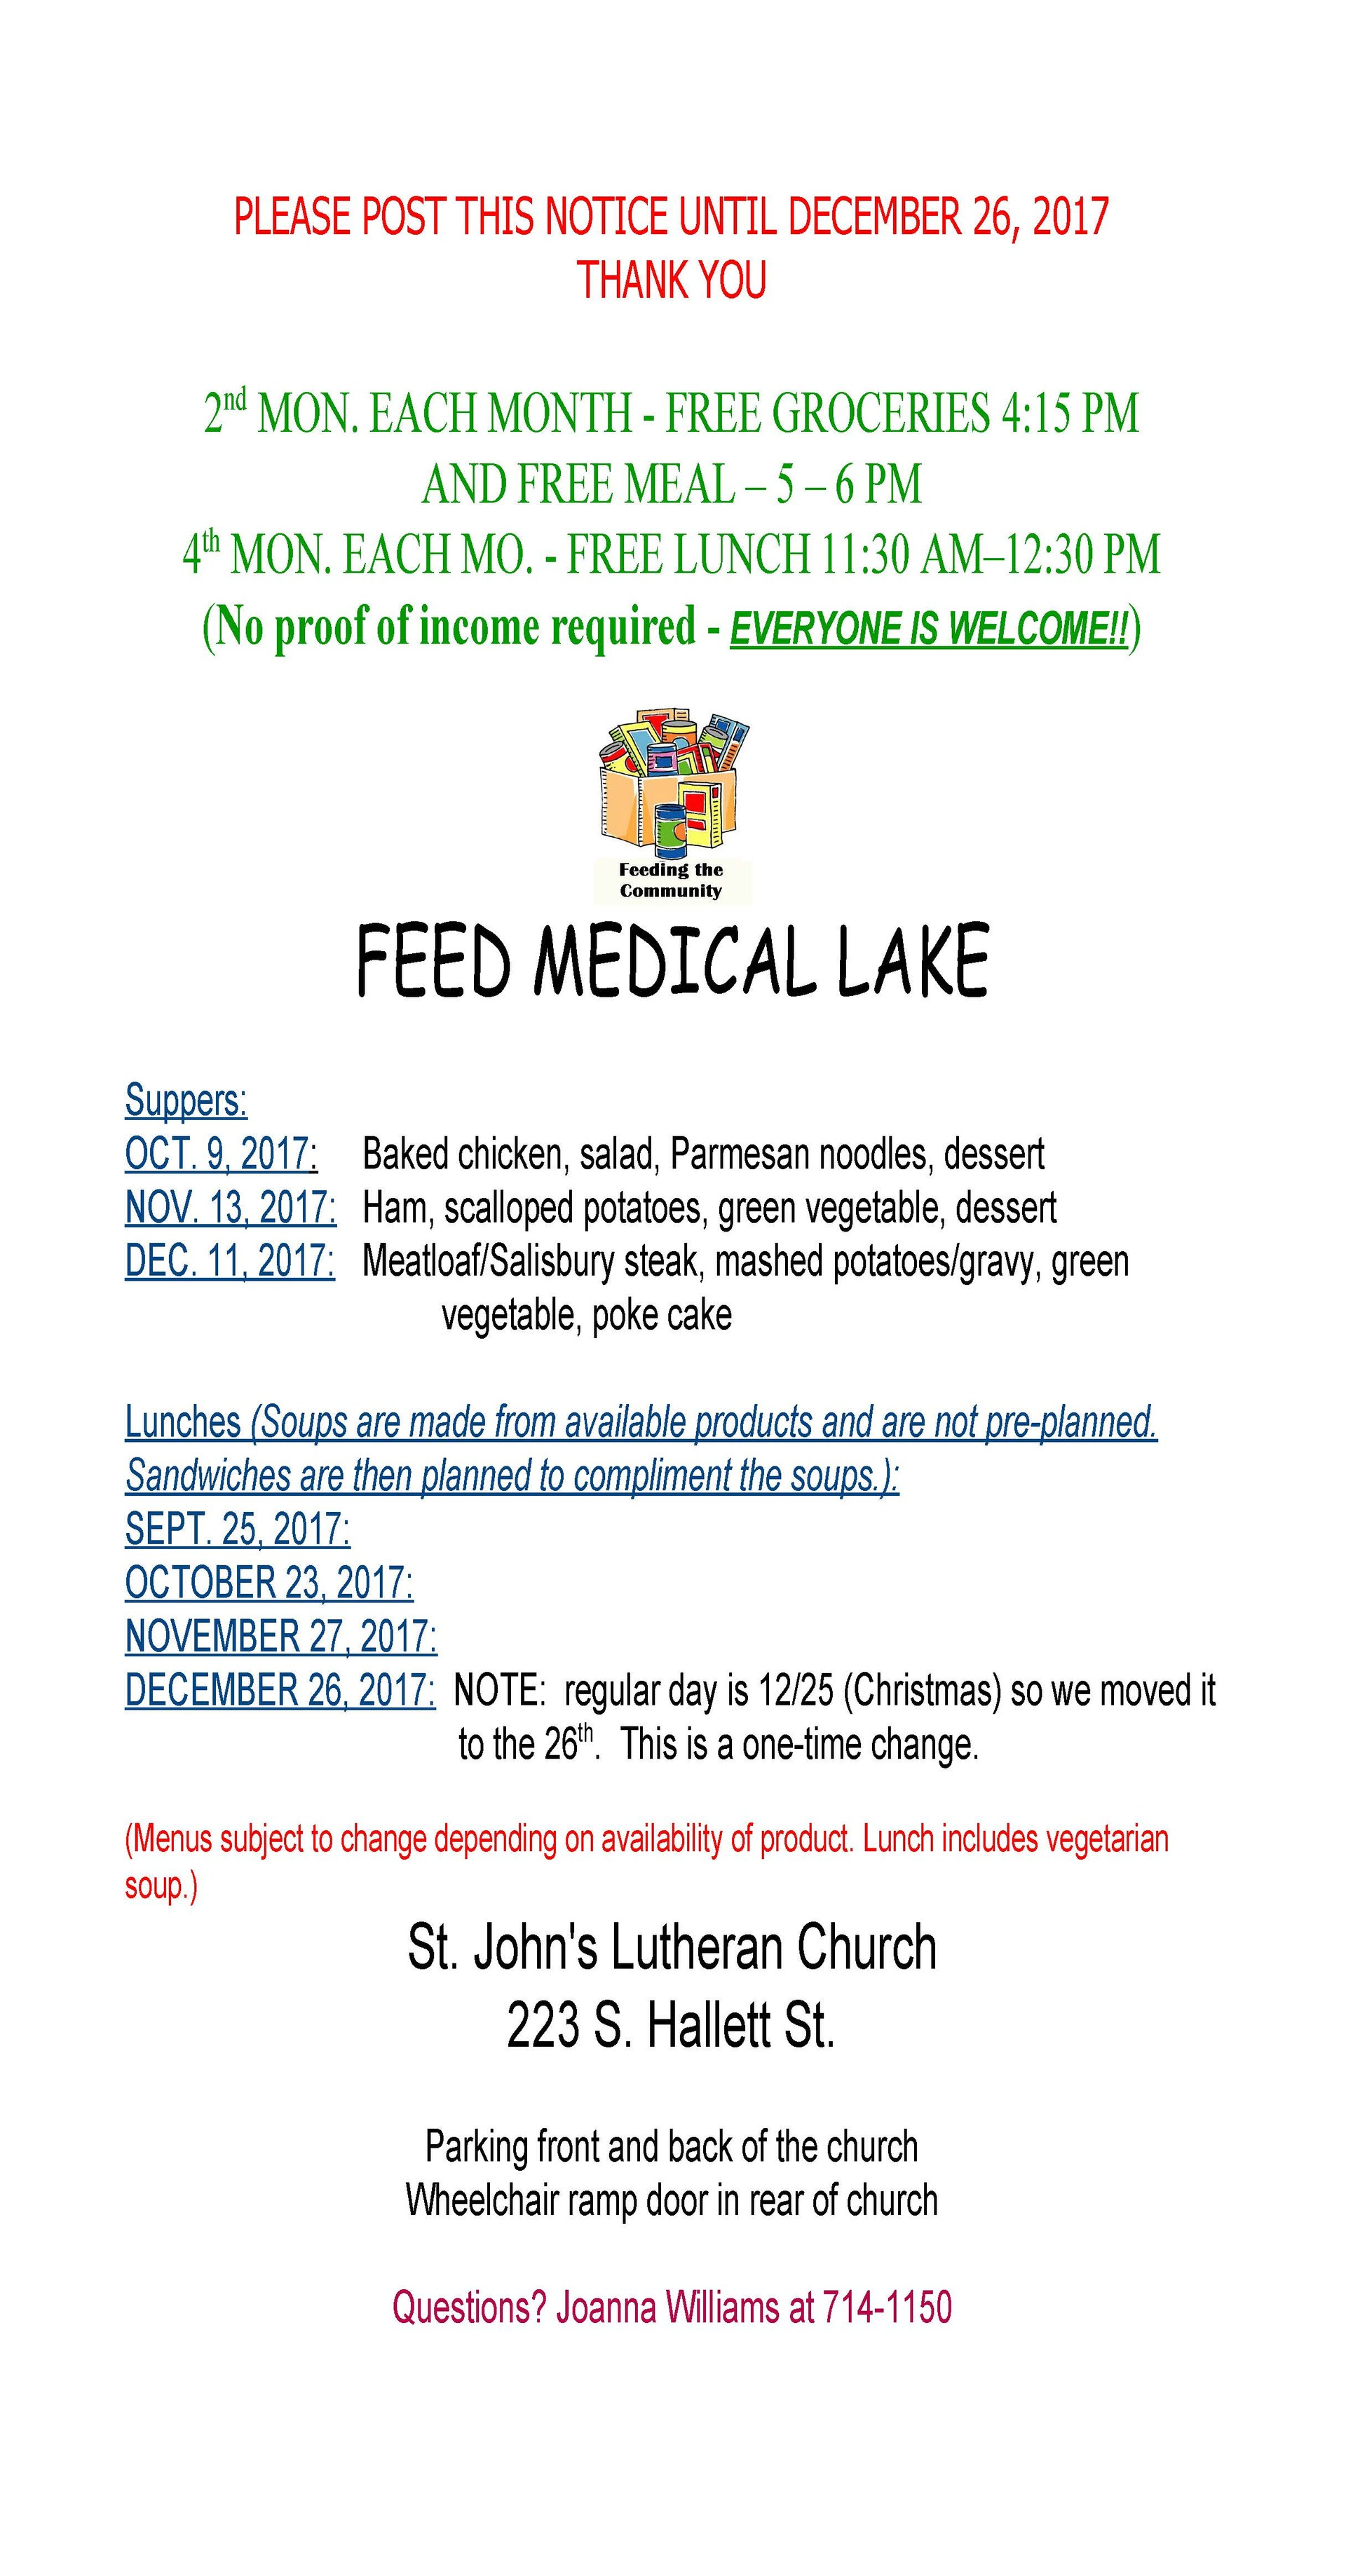 Feed Medical Lake Information October 2017 through December 2017